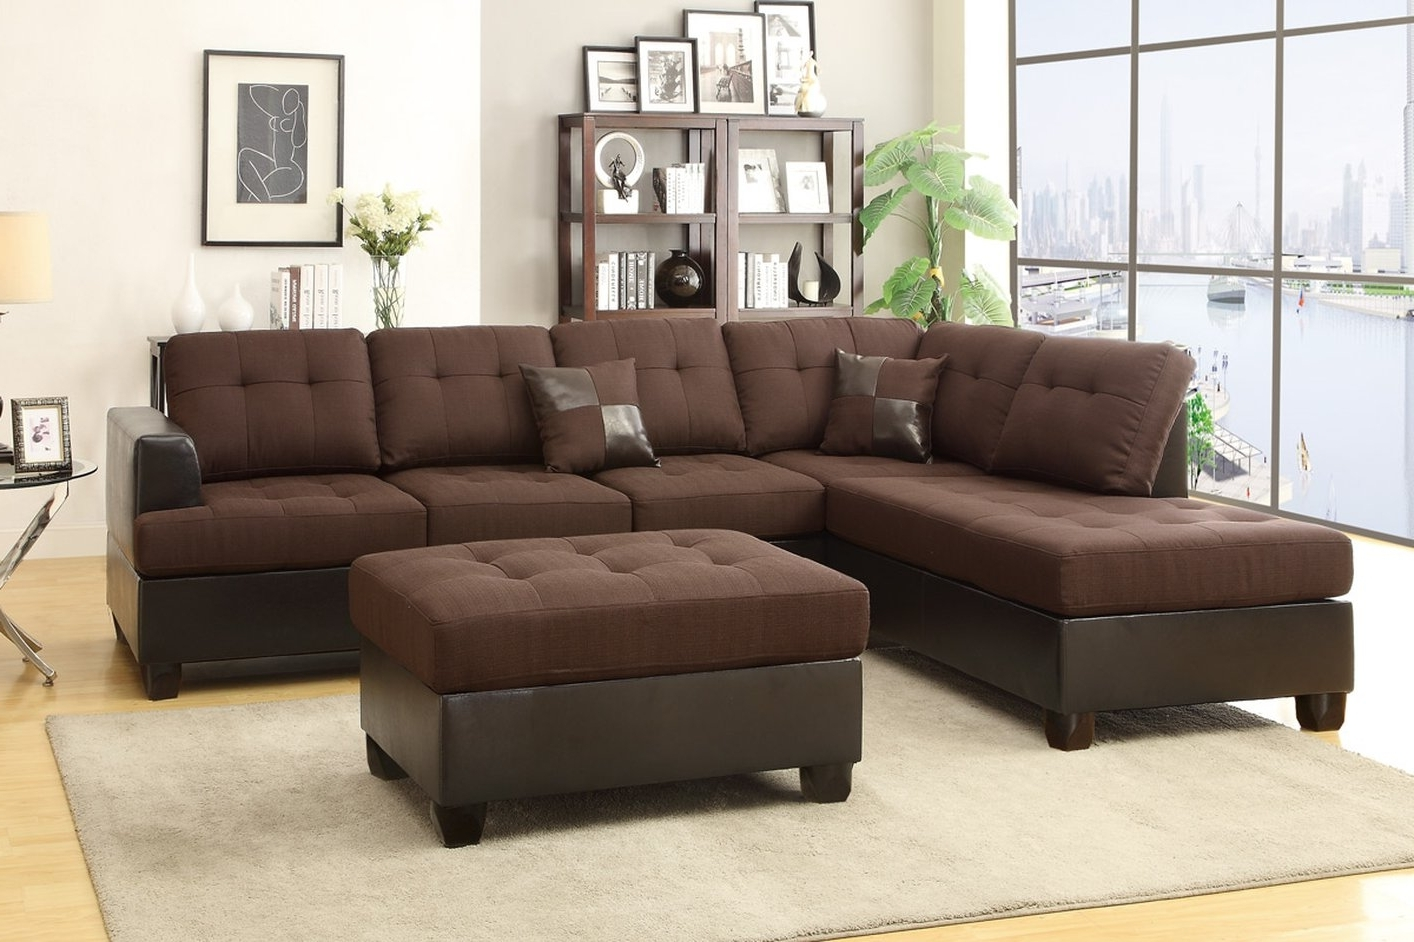 Latest Sectional Sofa Design: Super Chocolate Brown Sectional Sofa Throughout Chocolate Brown Sectional Sofas (View 11 of 20)